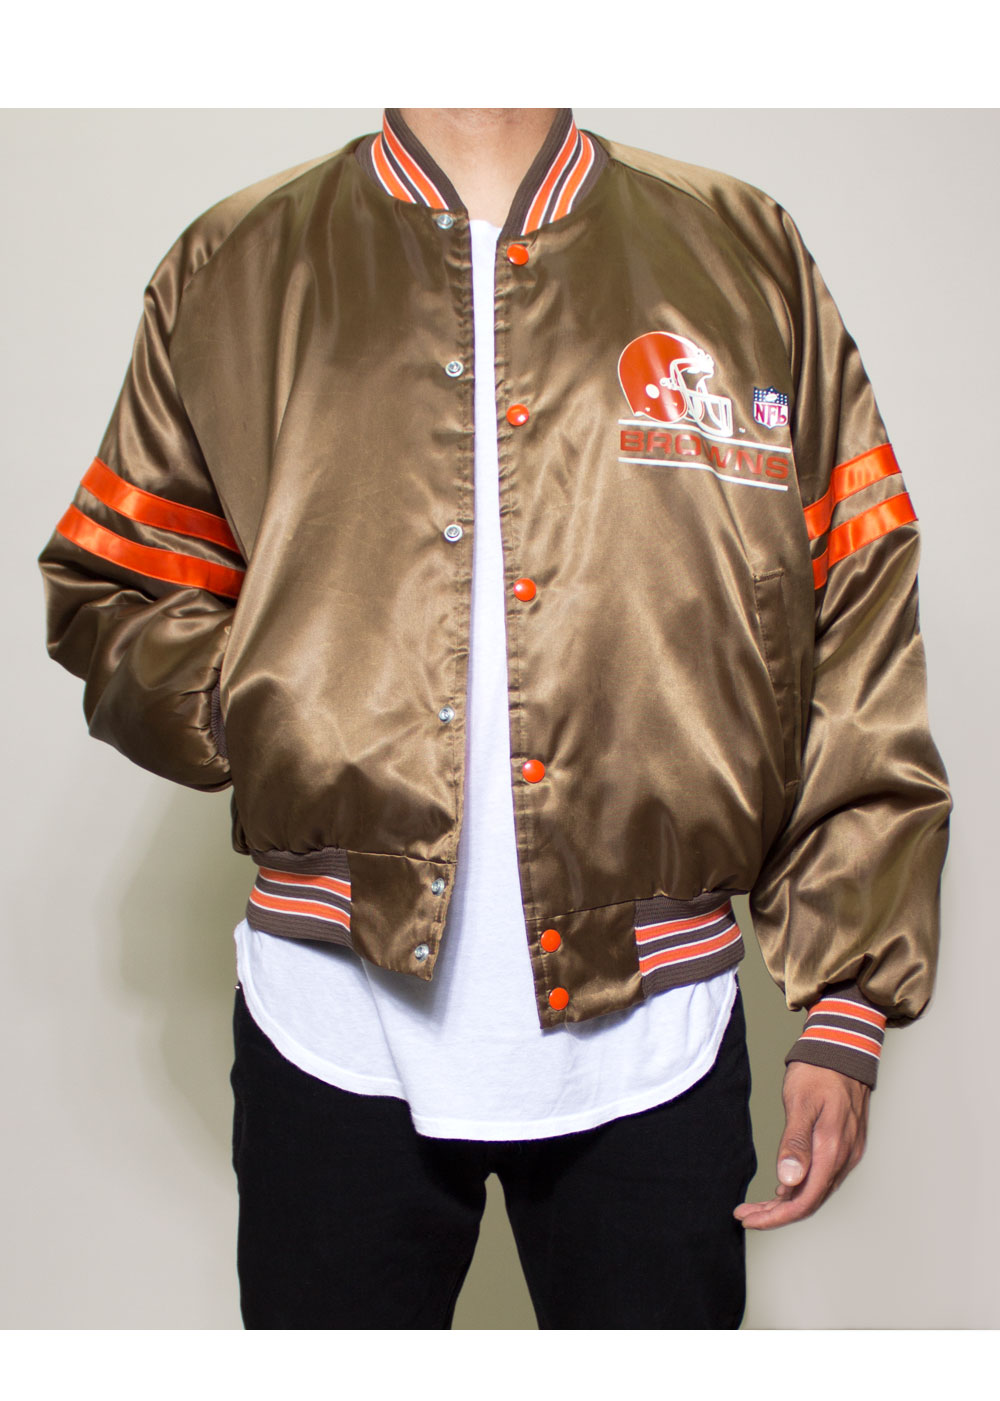 newest 2bb00 b0d16 Cleveland Browns NFL Bomber Jacket